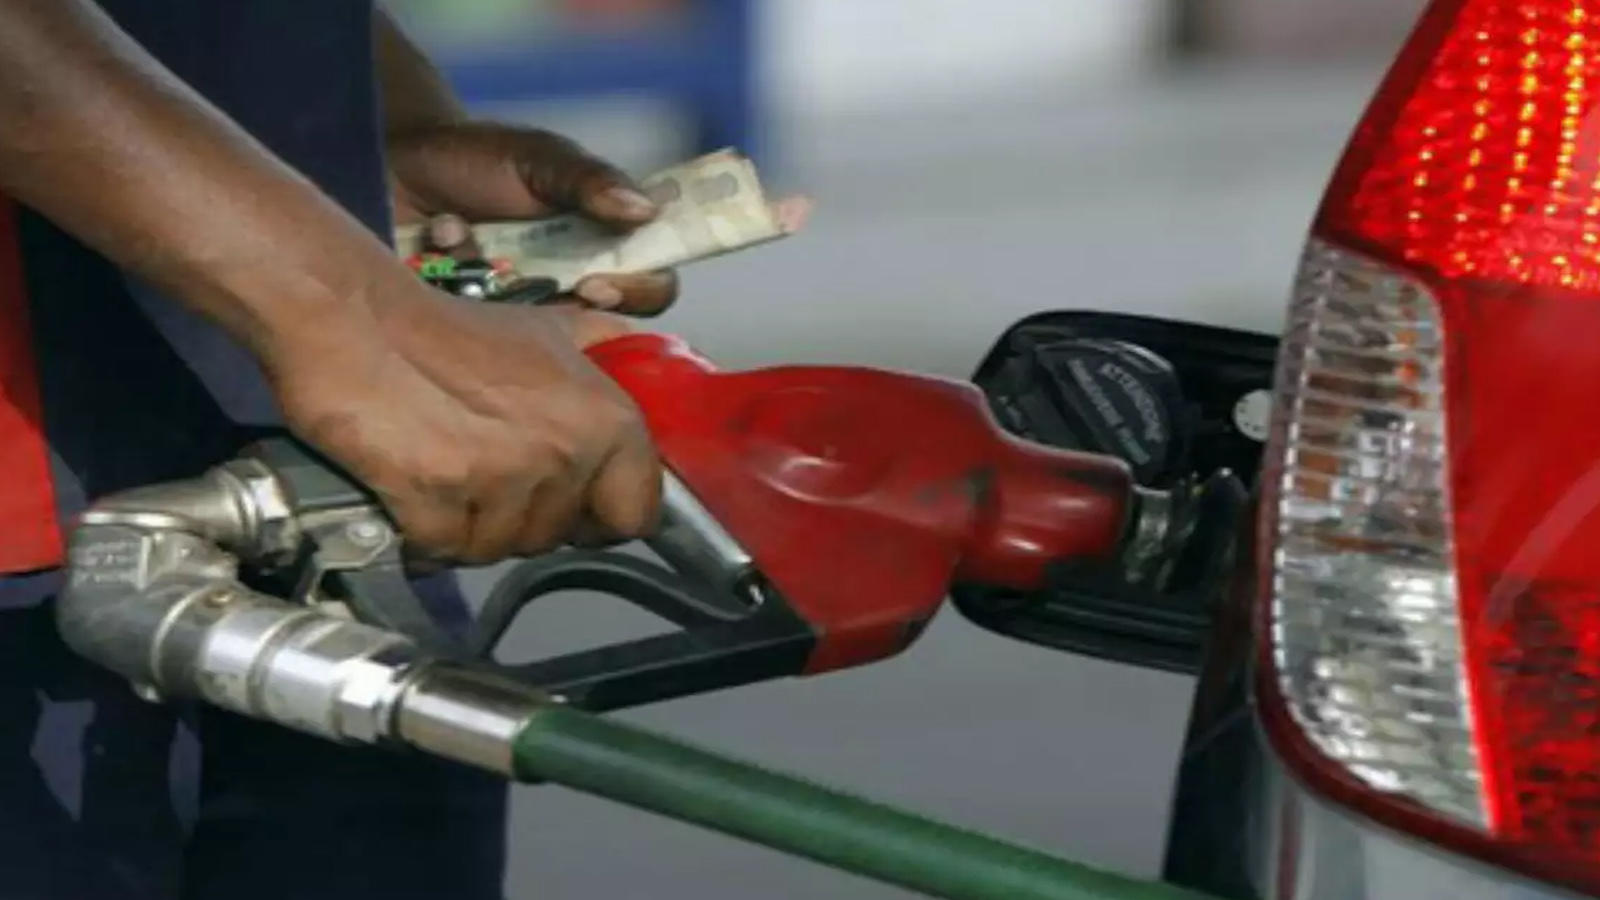 petrol-price-nears-all-time-high-after-month-long-freeze